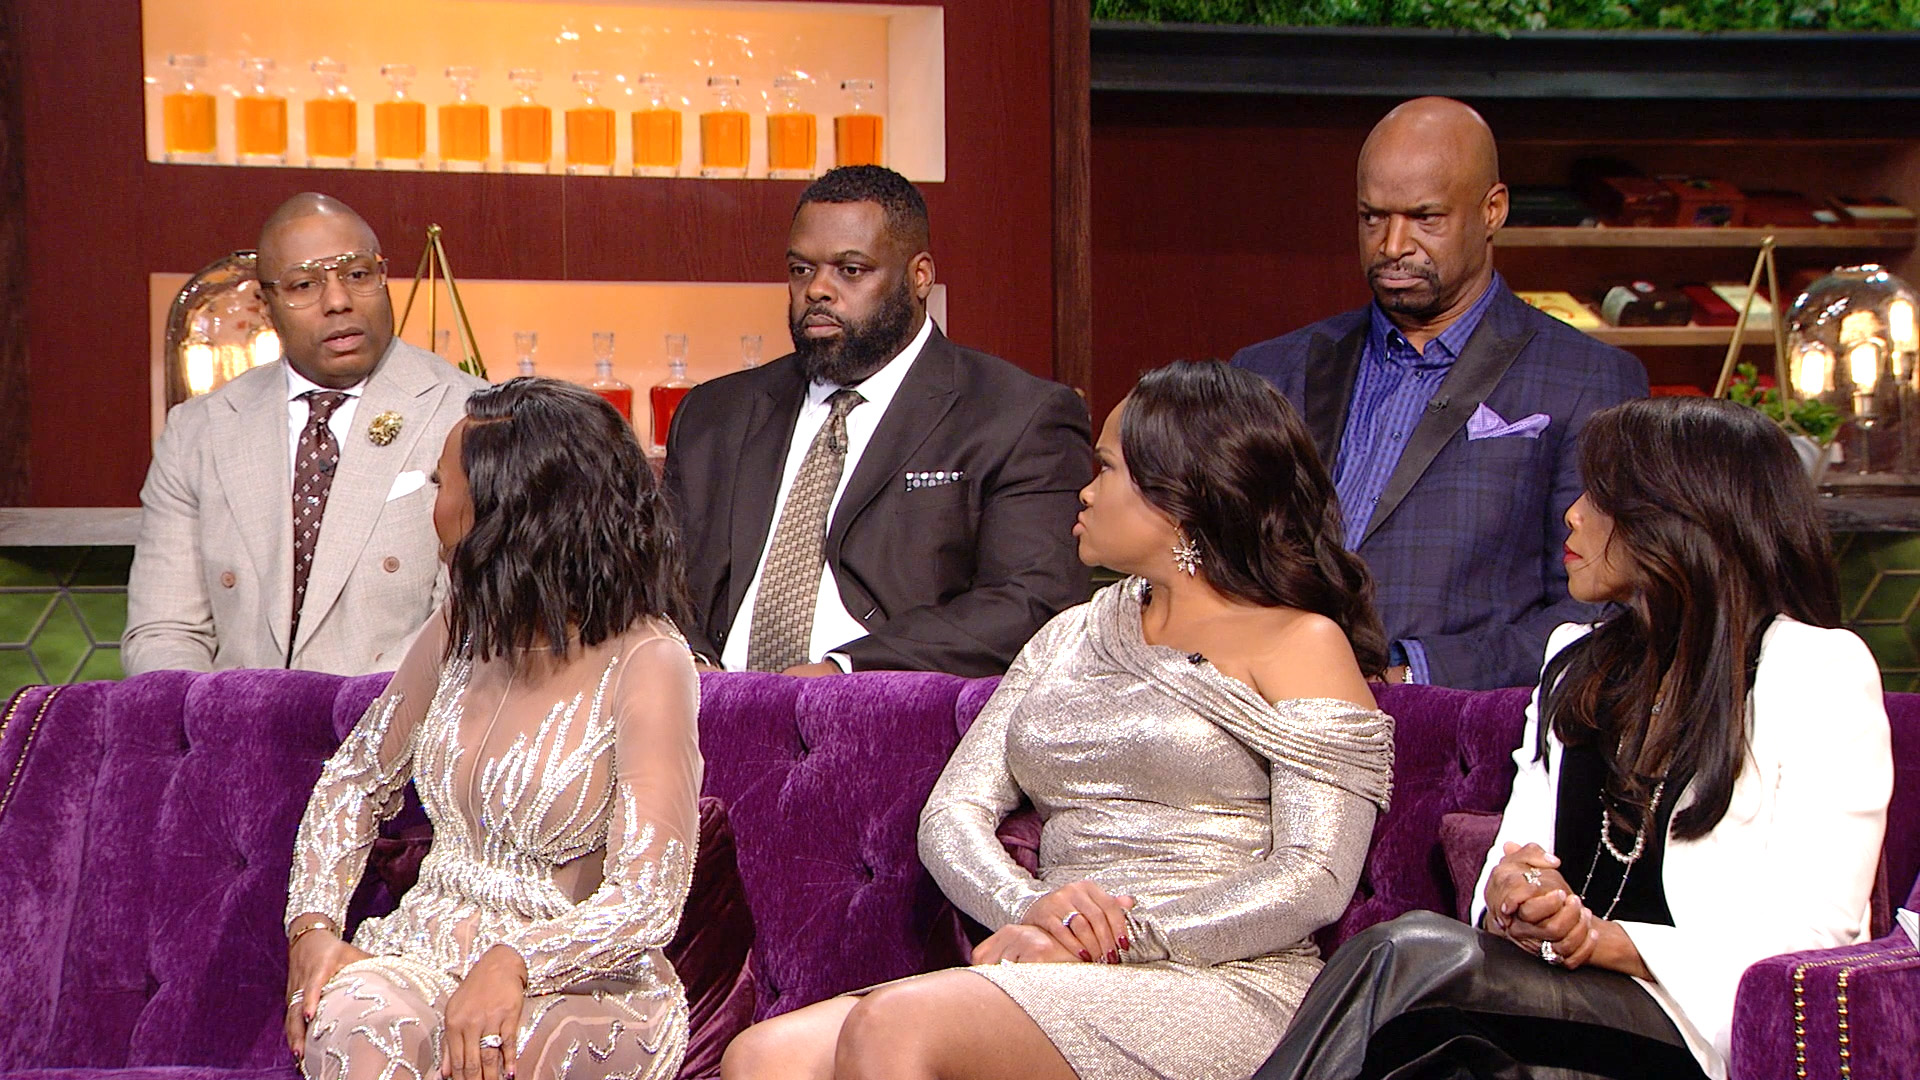 The Full Dr. G Hotel Story Is Revealed on Married to Medicine Reunion